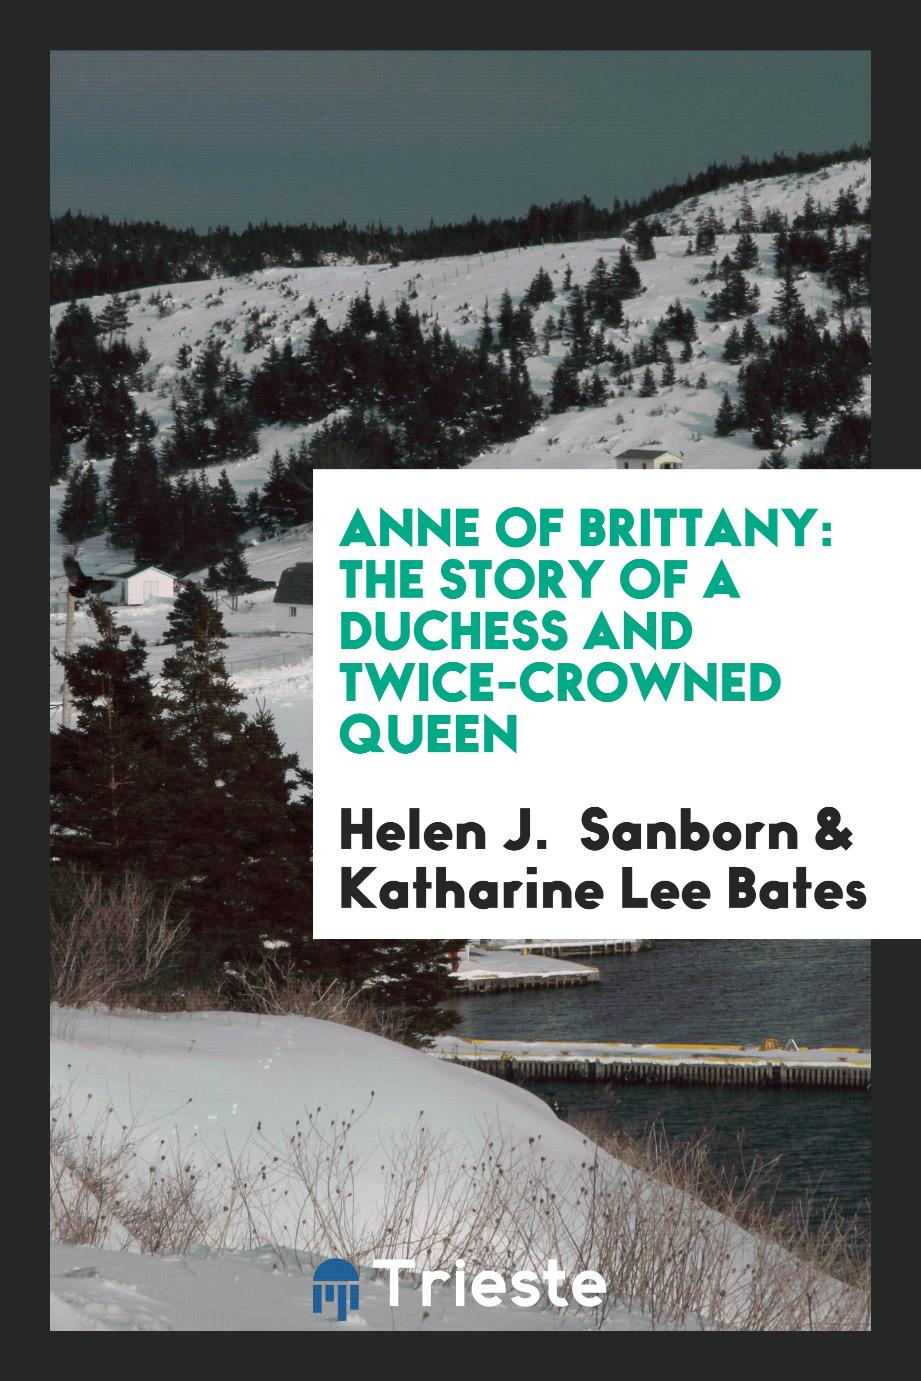 The Story of a Duchess and Twice-Crowned Queen